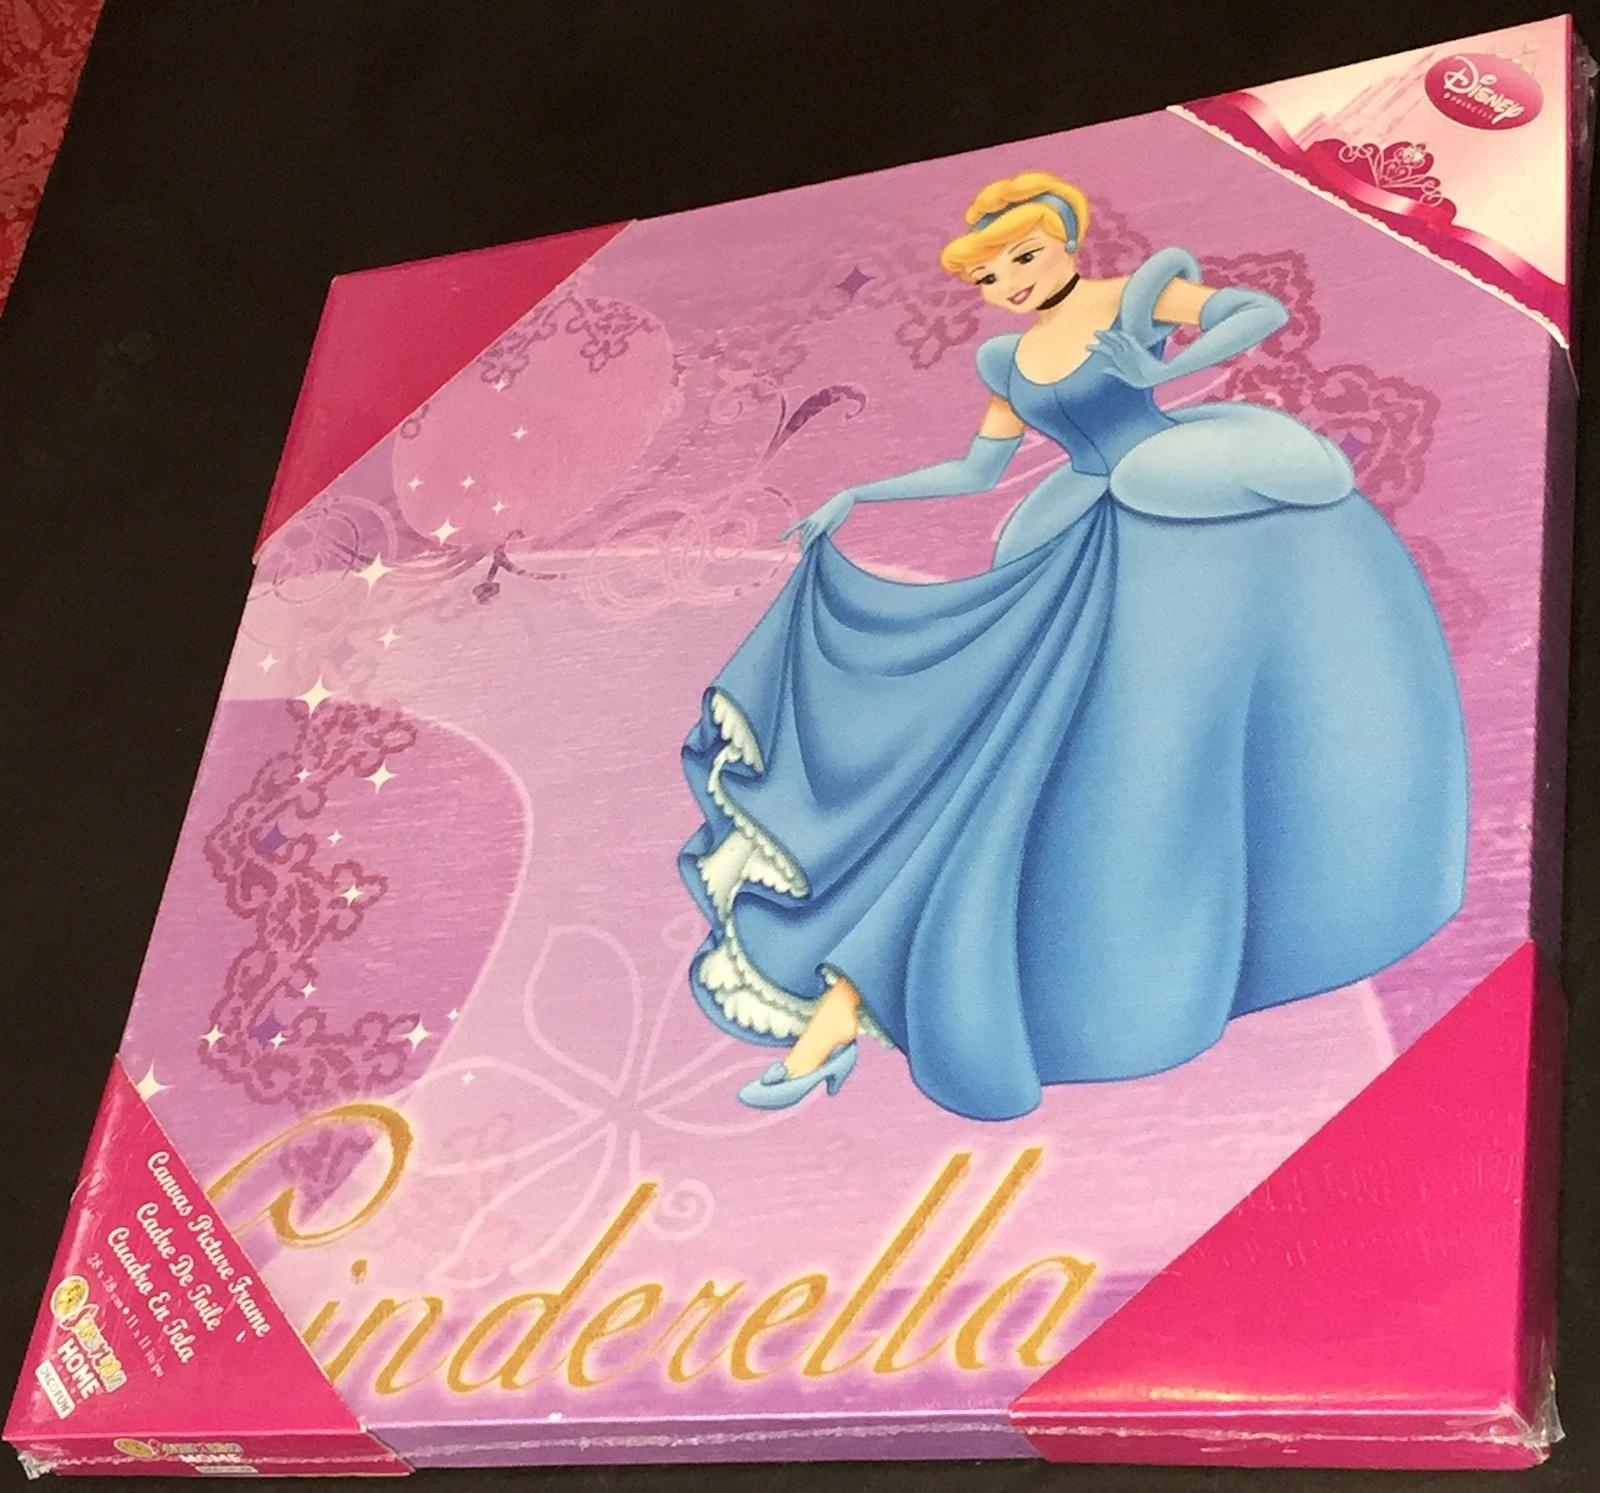 Disney's Princess Cinderella Decorative Wall Art Canvas Pertaining To Princess Canvas Wall Art (Image 11 of 20)